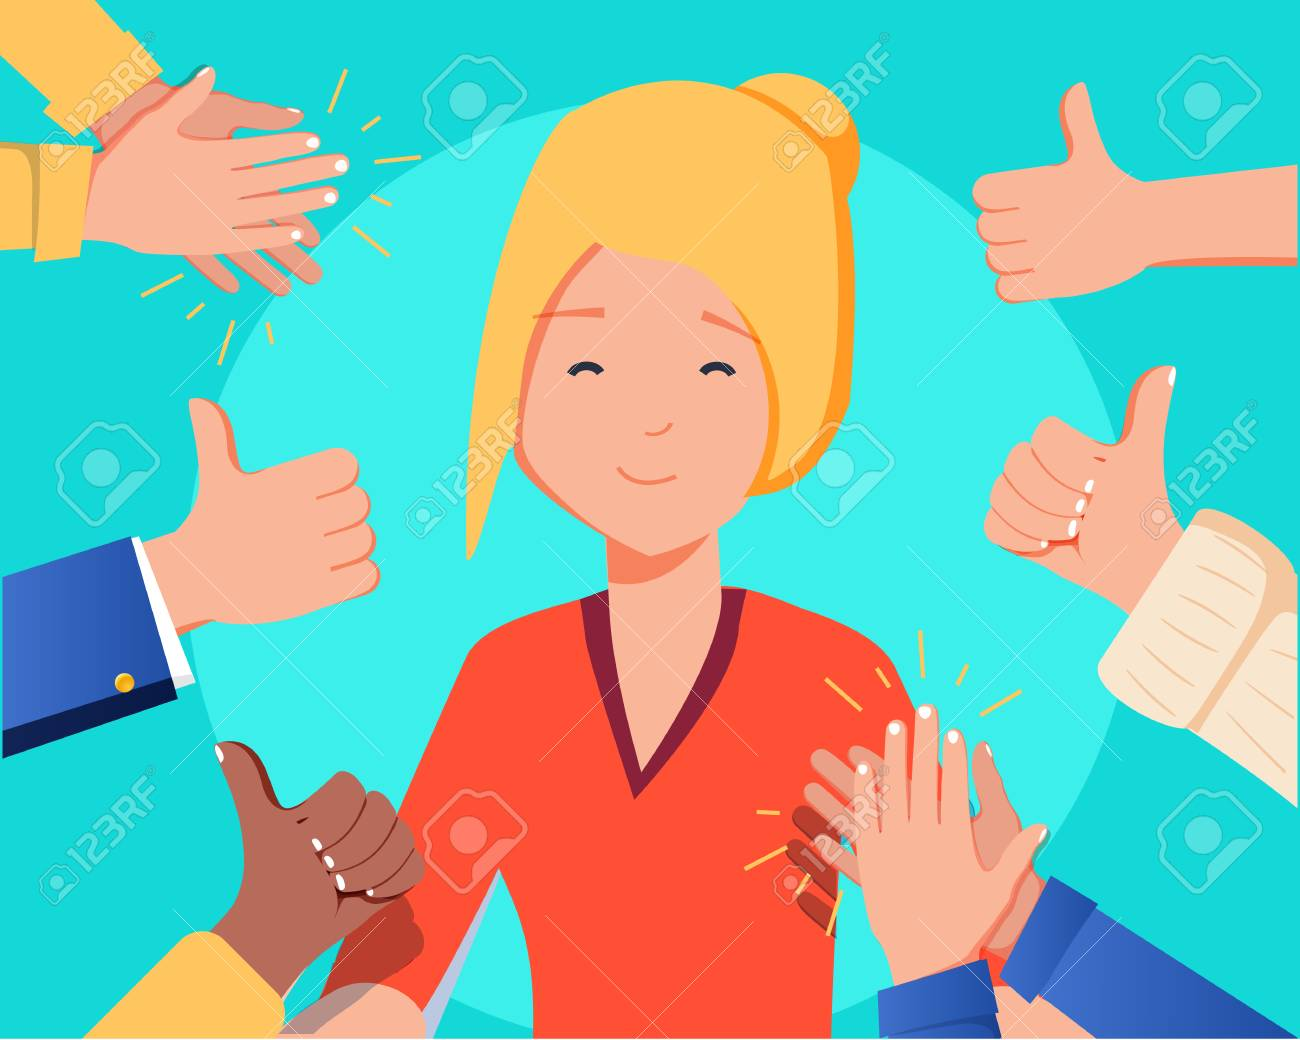 Happy woman portrait with thumbs up and human hands clapping isolated on background. Thumbs up flat hands for social network, blog and app. Party celebration concept. Happy woman, vector illustration - 126772593